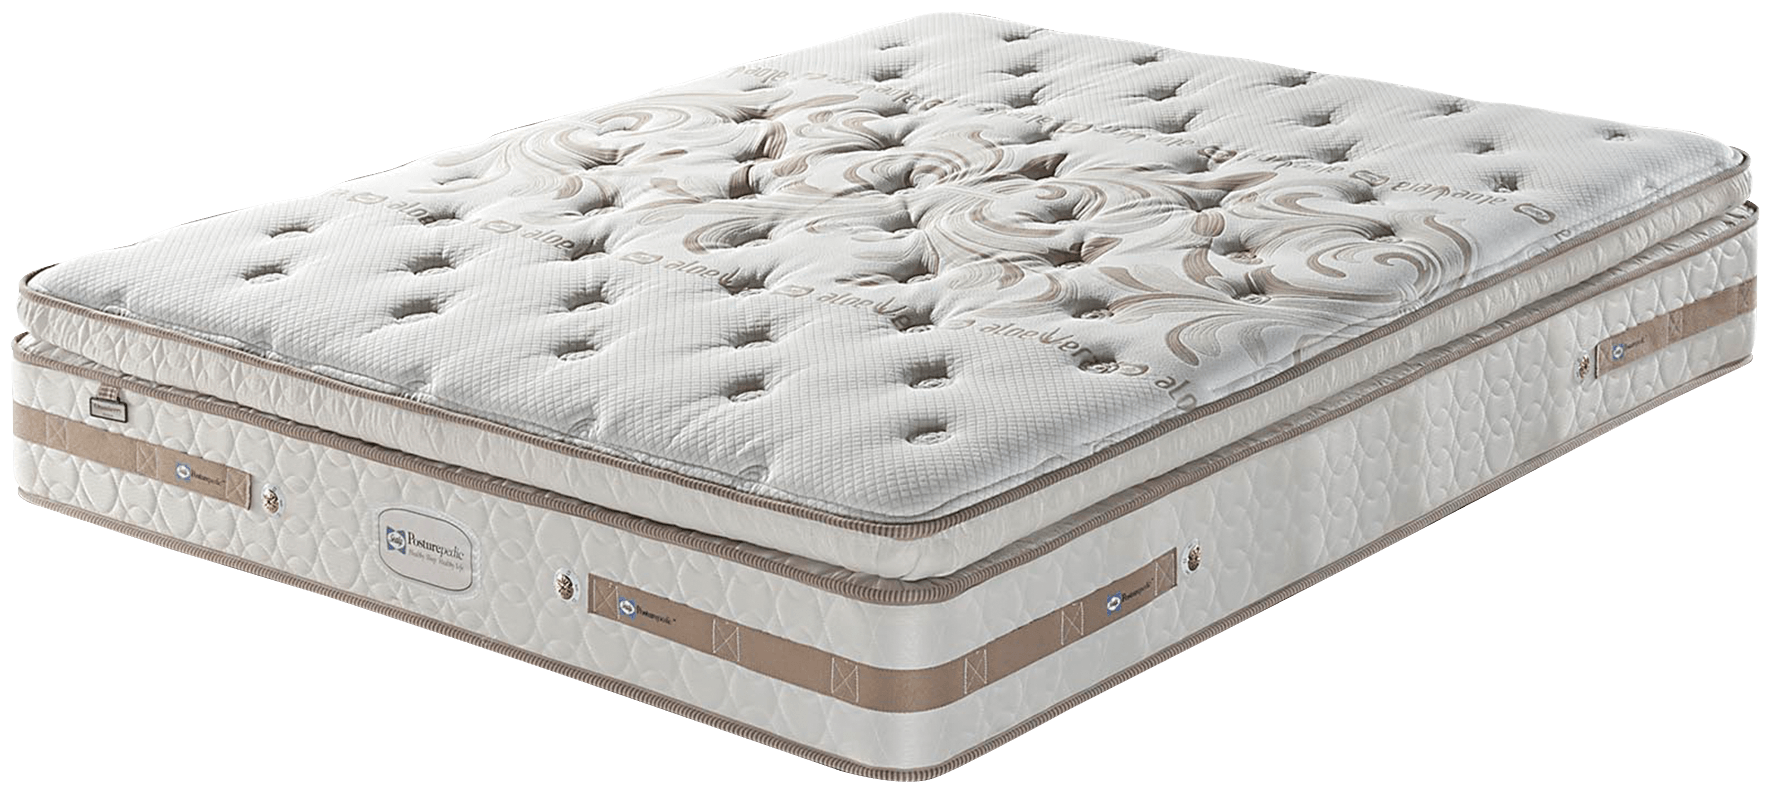 Pillow Top Mattress Queen In Sealy Boston Gel Medium Pillow Top Mattress Queen Std Length